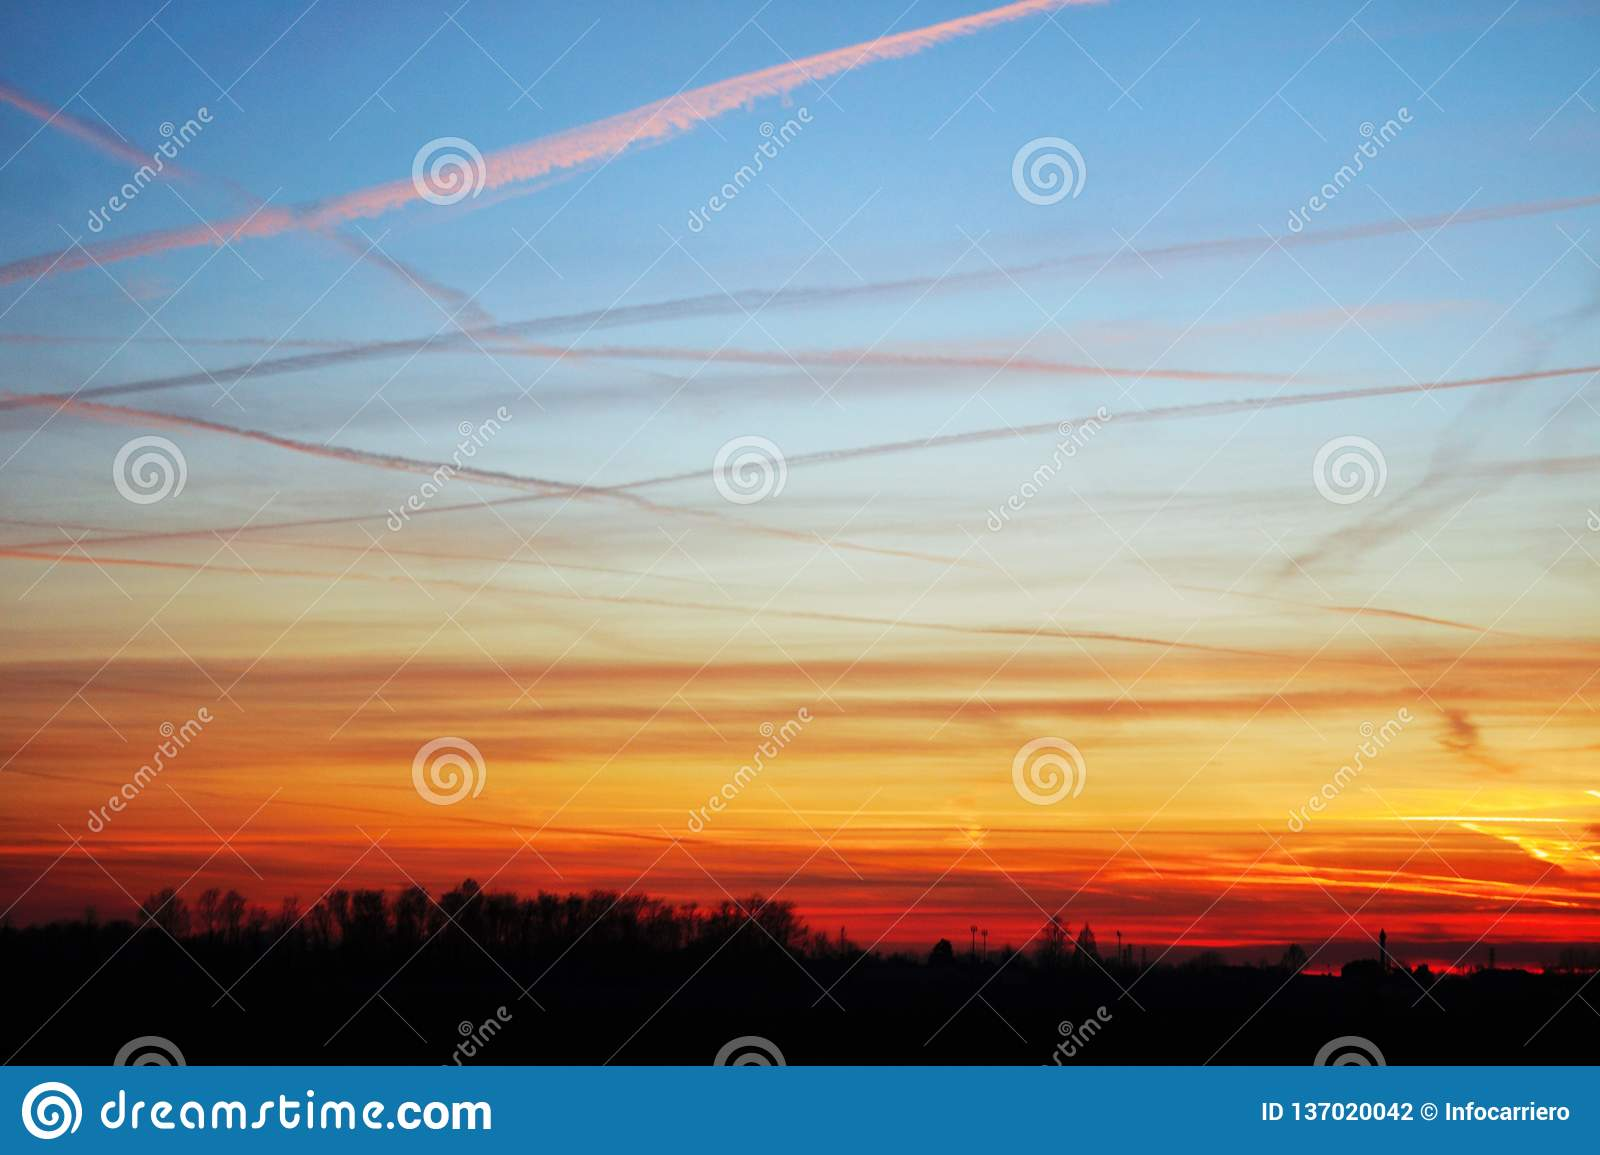 sky at sunset, the clouds are colored red by the sun that in a while will make room for the moon